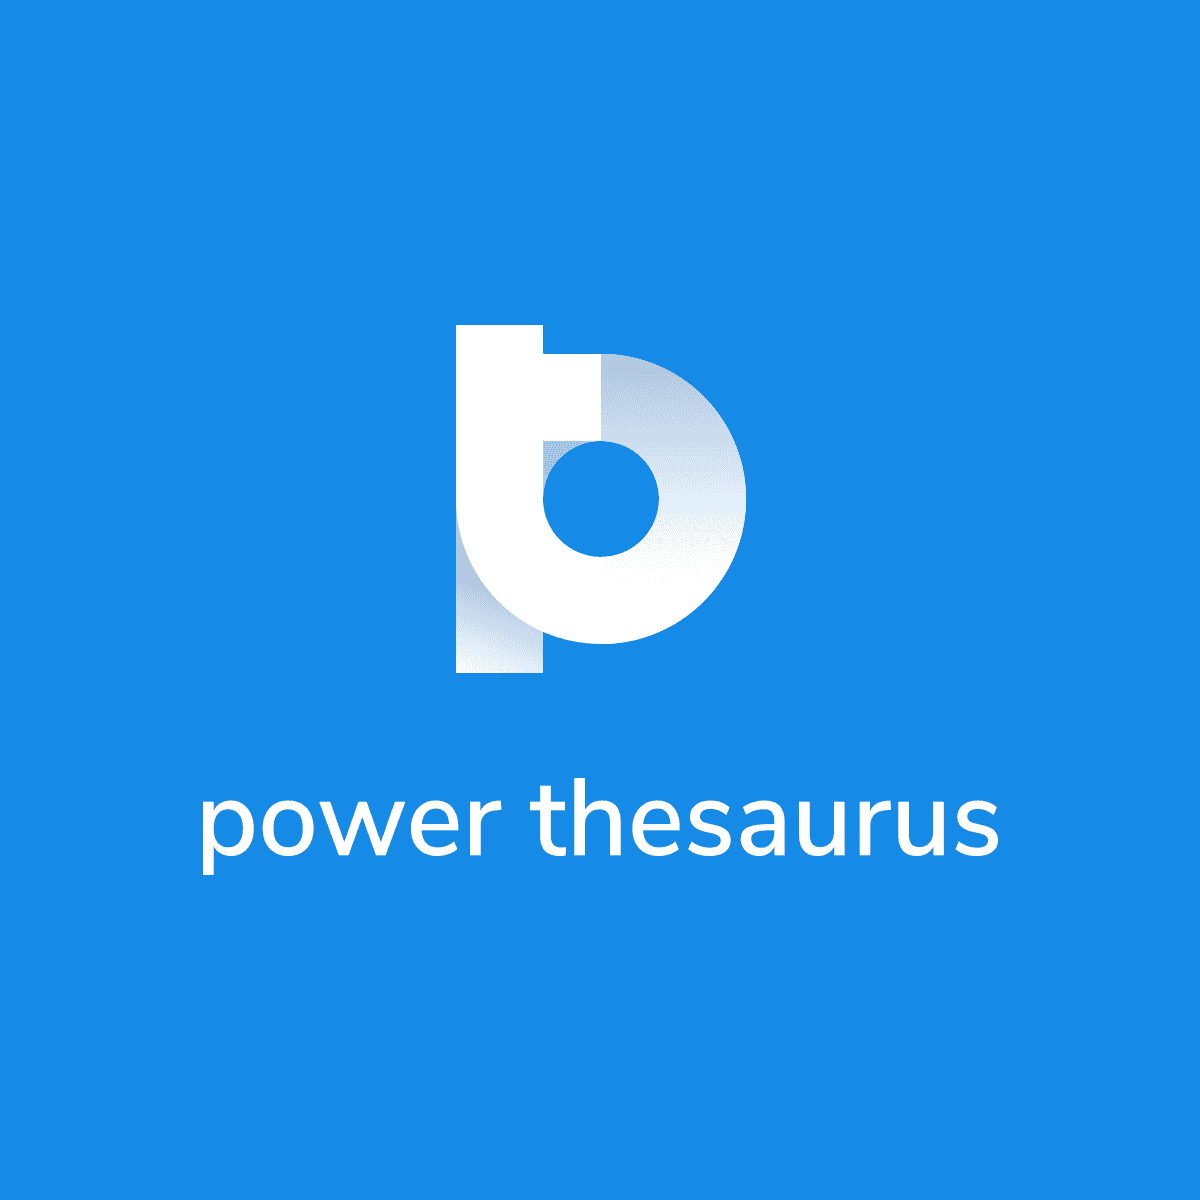 Power Thesaurus